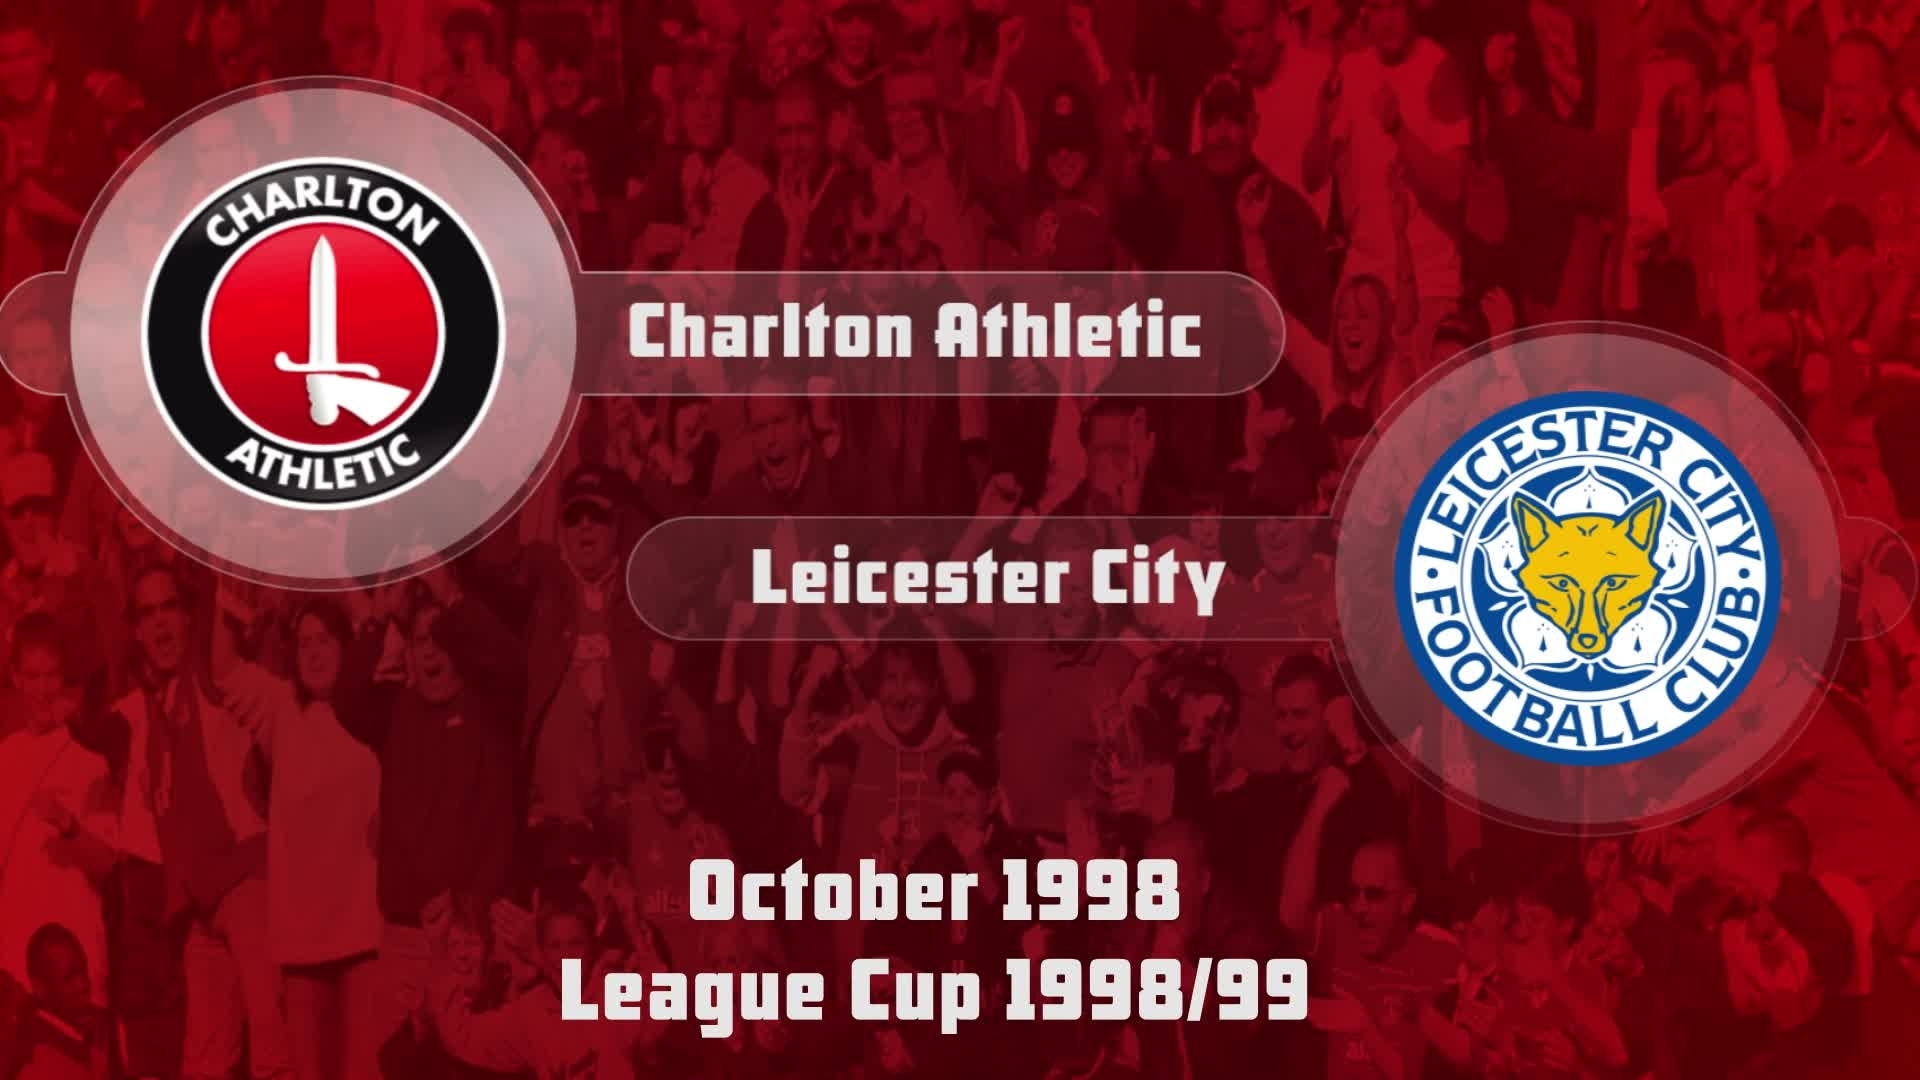 13 HIGHLIGHTS | Charlton 1 Leicester City 2 (League Cup Oct 1998)